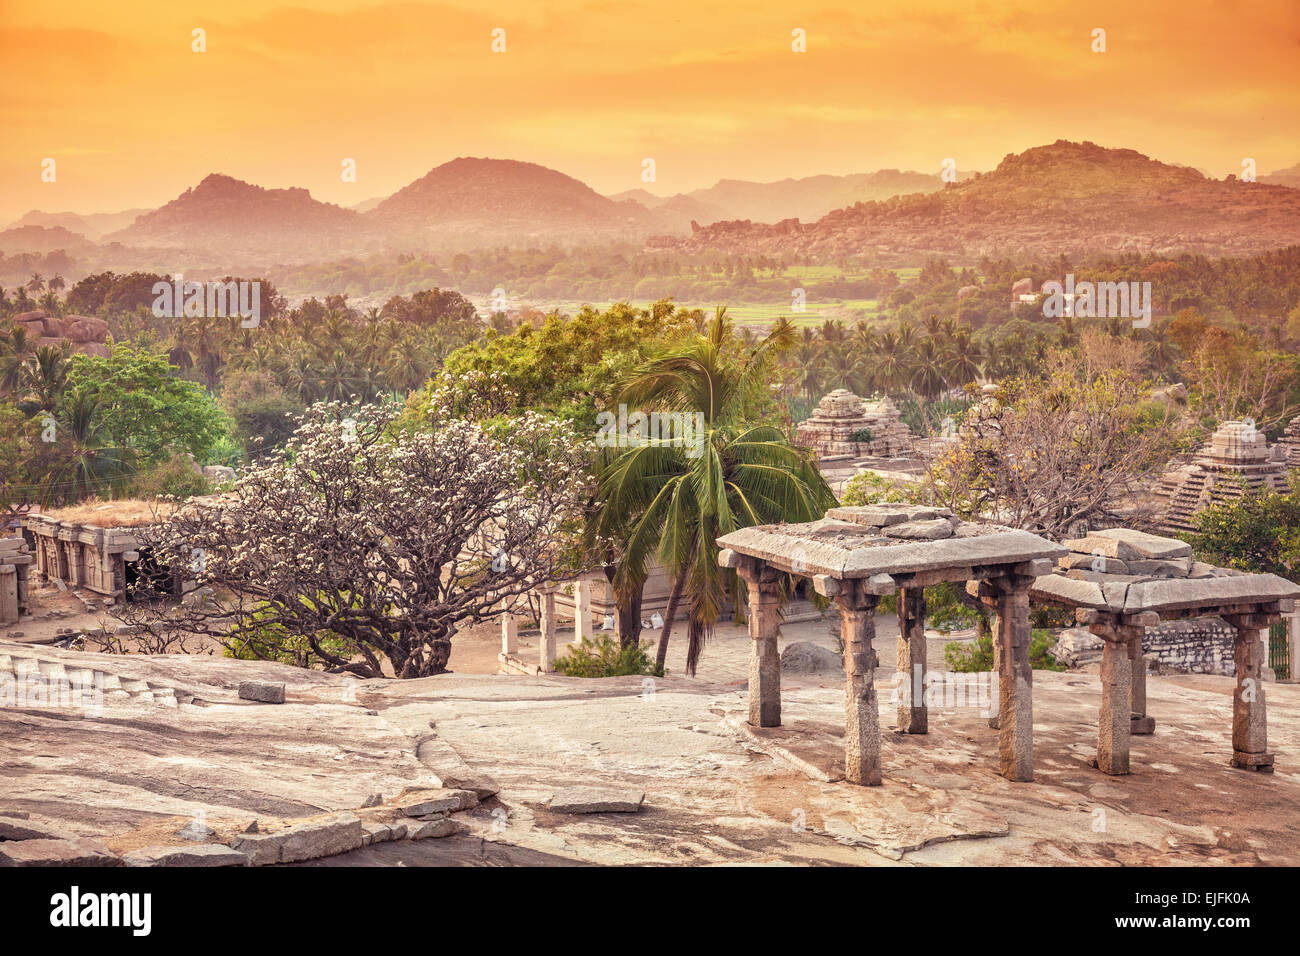 Ancient ruins on Hemakuta hill at orange sunset sky in Hampi, Karnataka, India - Stock Image